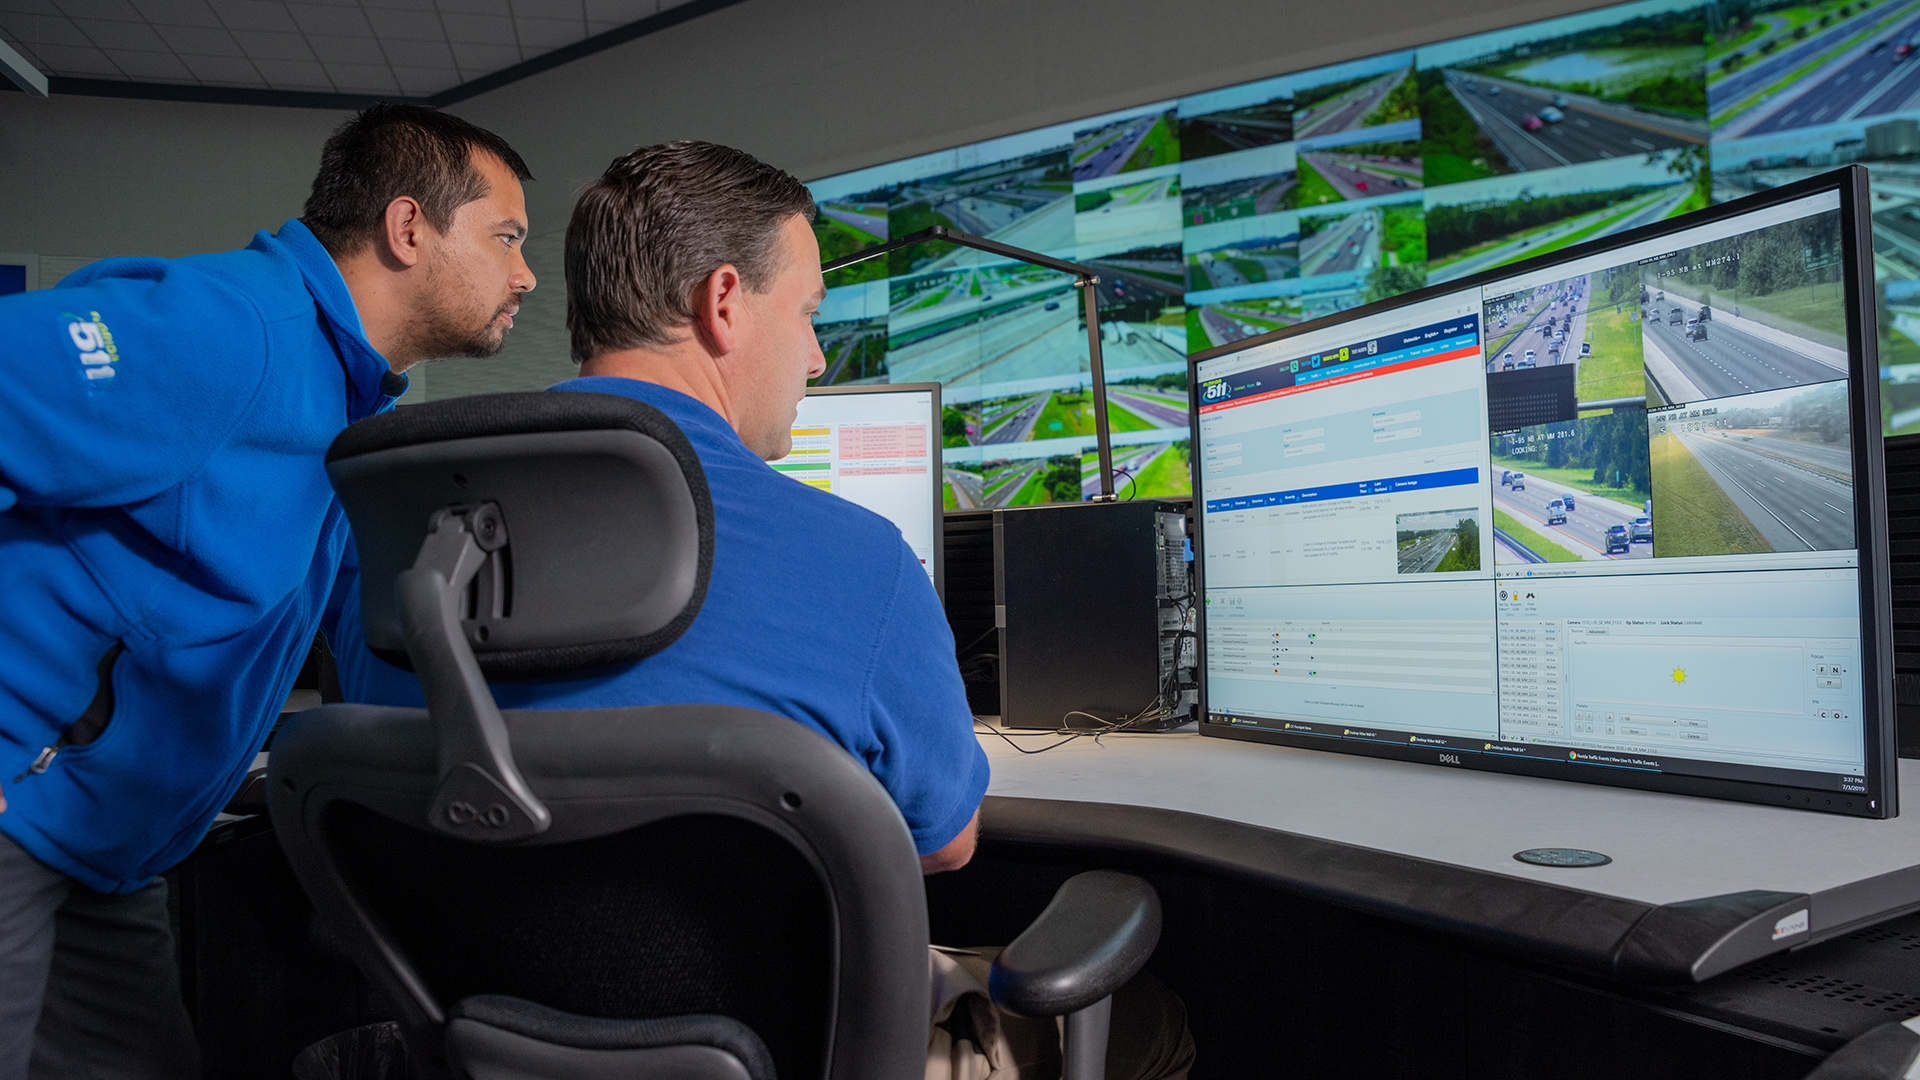 Global-5 Ensures Consistency of Vital Traffic Data with Computer-Based Training